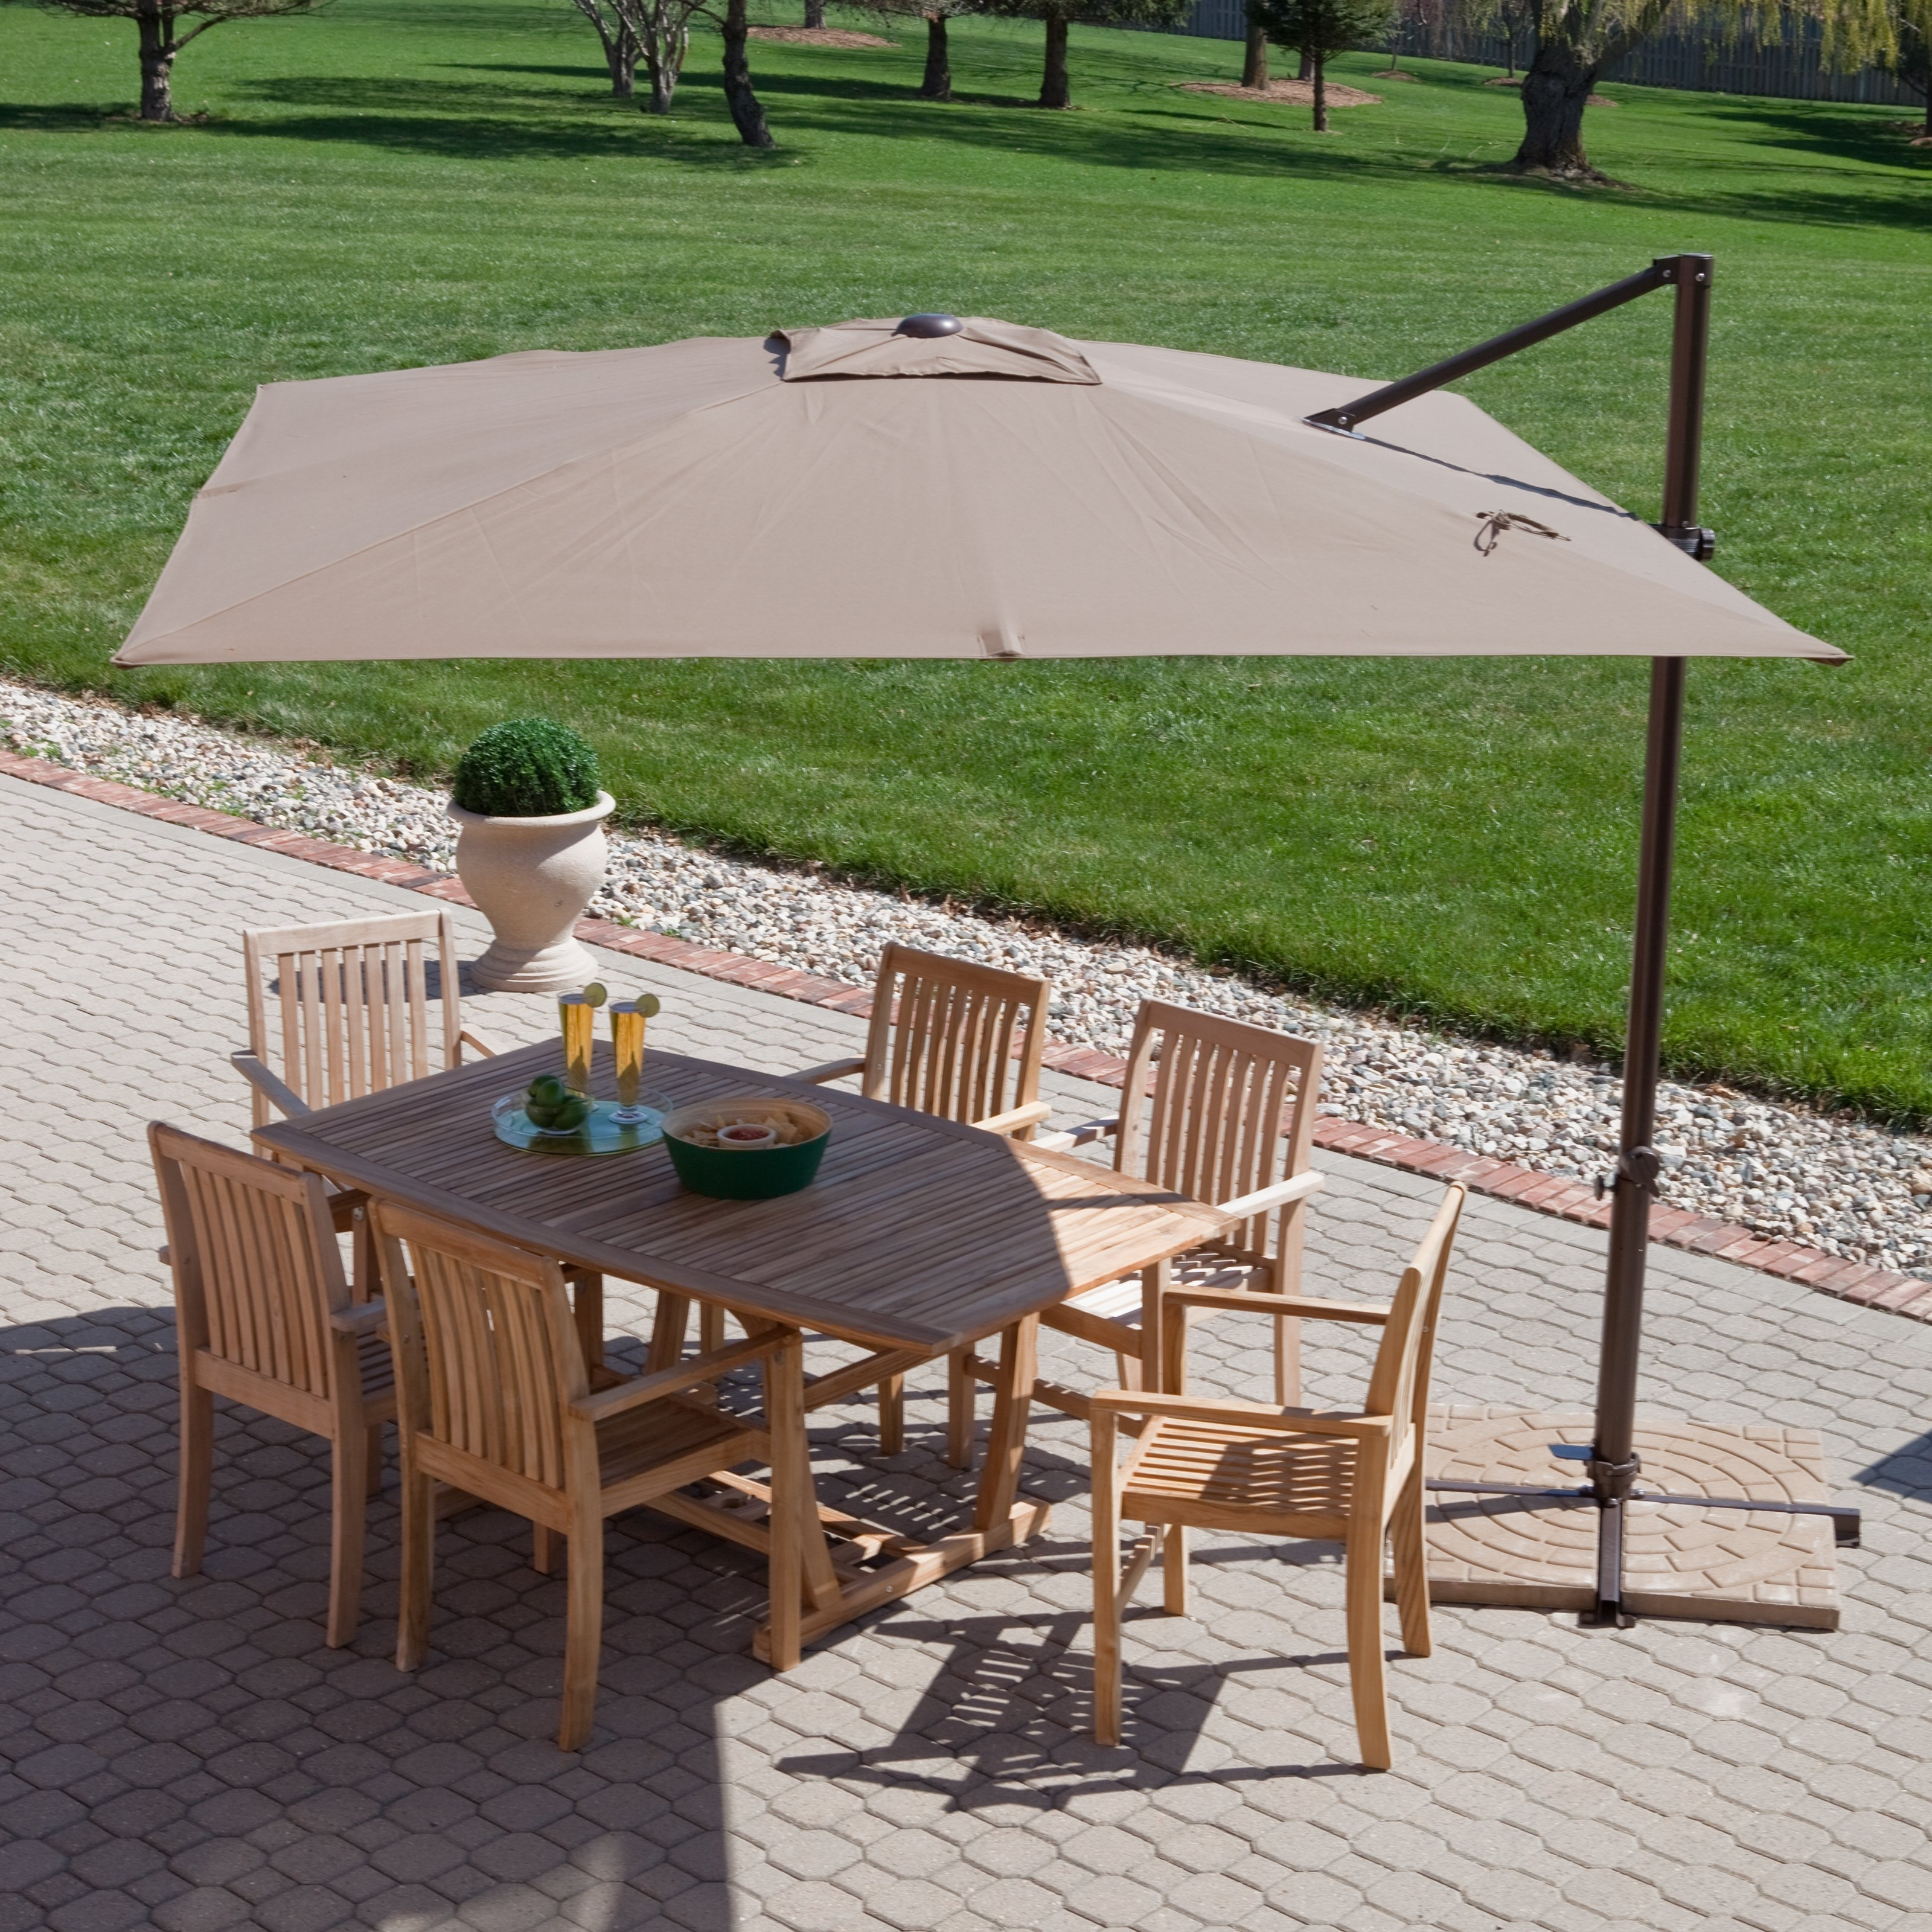 Square Mocha Fabric Patio Umbrella With Black Metal Base Over Brown Within Fashionable Offset Rectangular Patio Umbrellas (View 11 of 20)